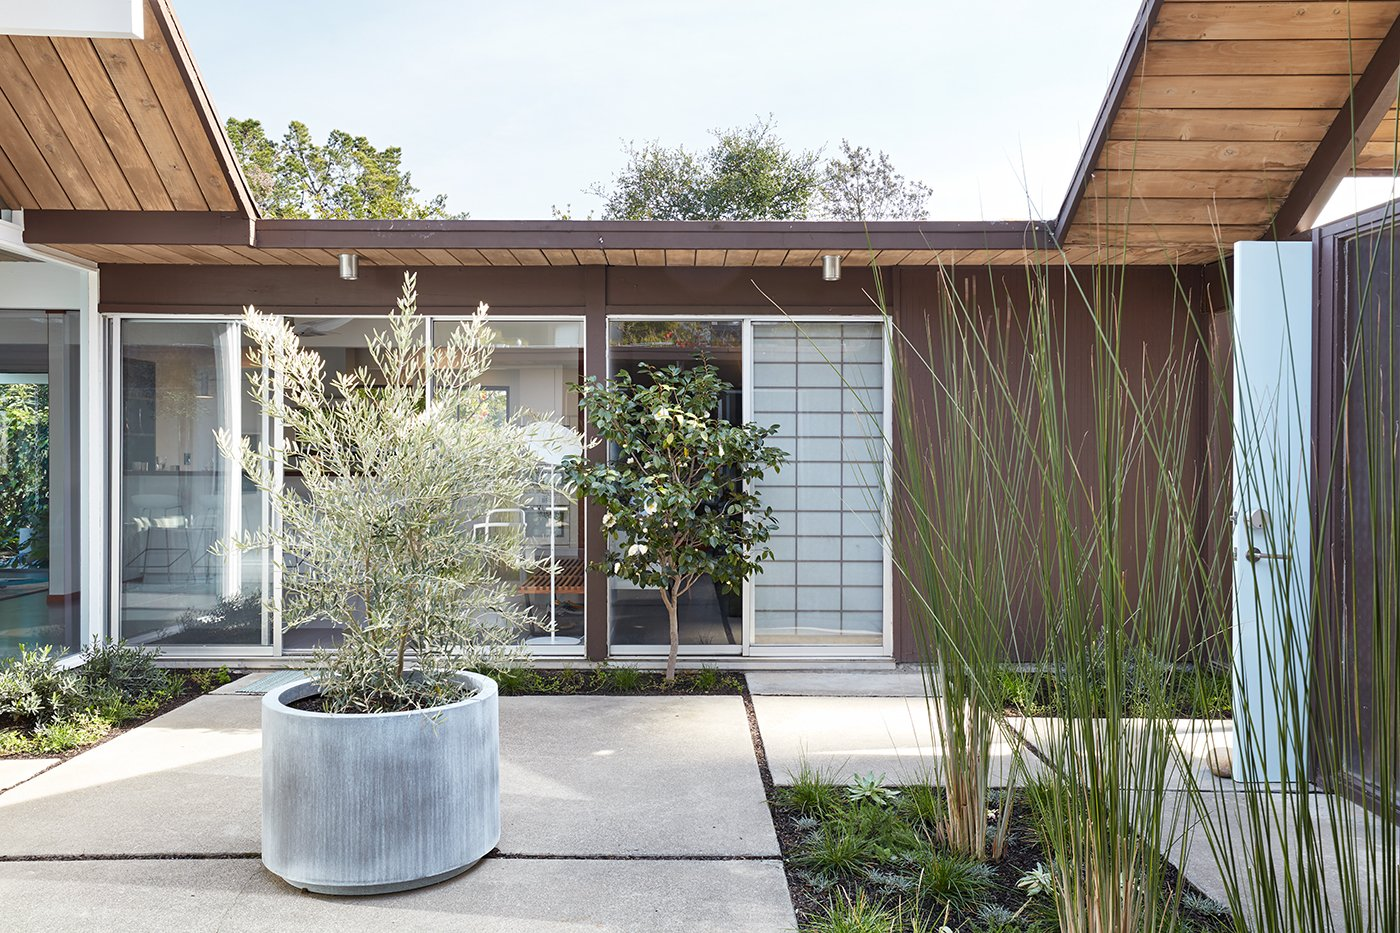 Exterior, Wood Siding Material, Mid-Century Building Type, House Building Type, and Flat RoofLine The atrium door at the front entry (on the right) is painted a light blue—the same accent color that has been used in the home's kitchen and bathroom.     Photo 1 of 14 in This Eichler Home in California Mixes Scandinavian Vibes With Midcentury Charm